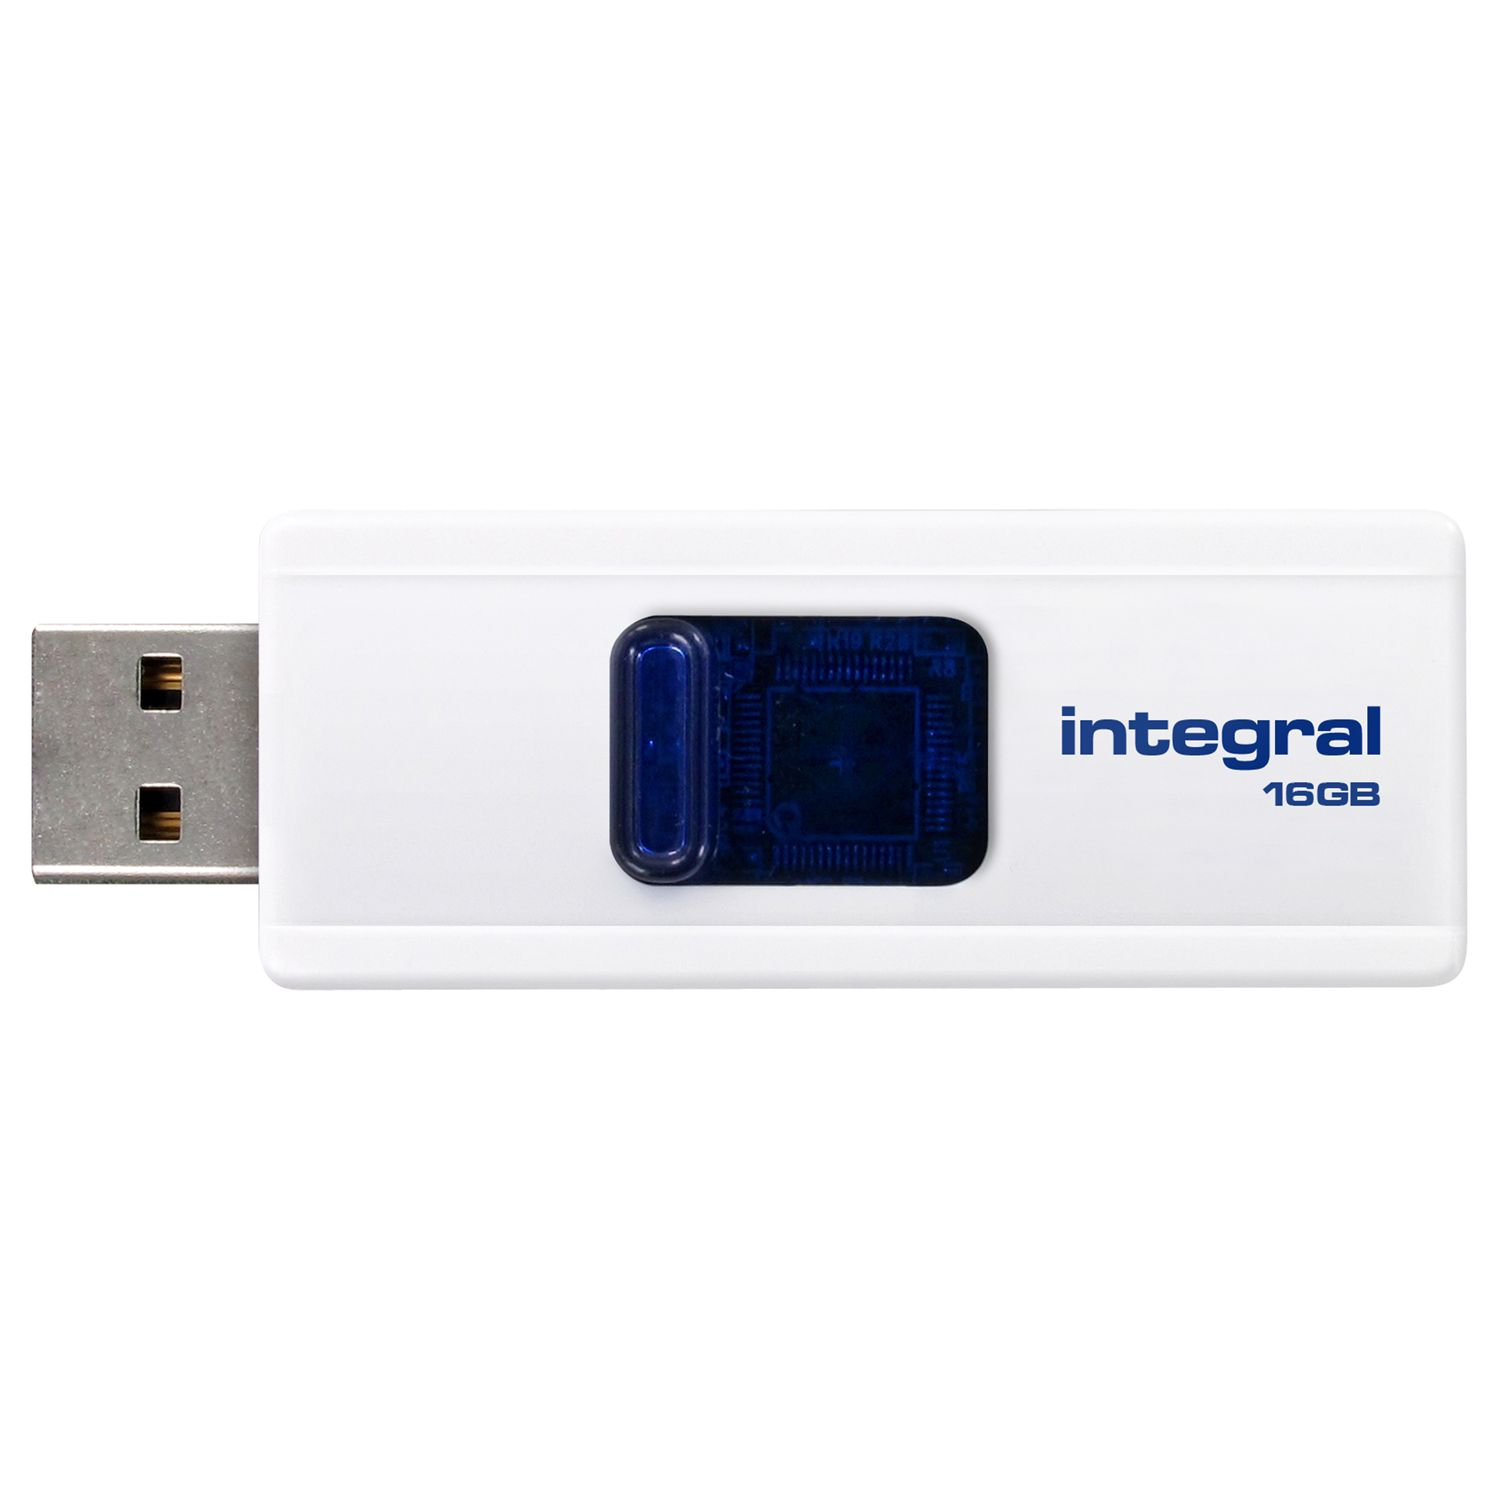 Integral Slide Usb Flash Drive, 16gb